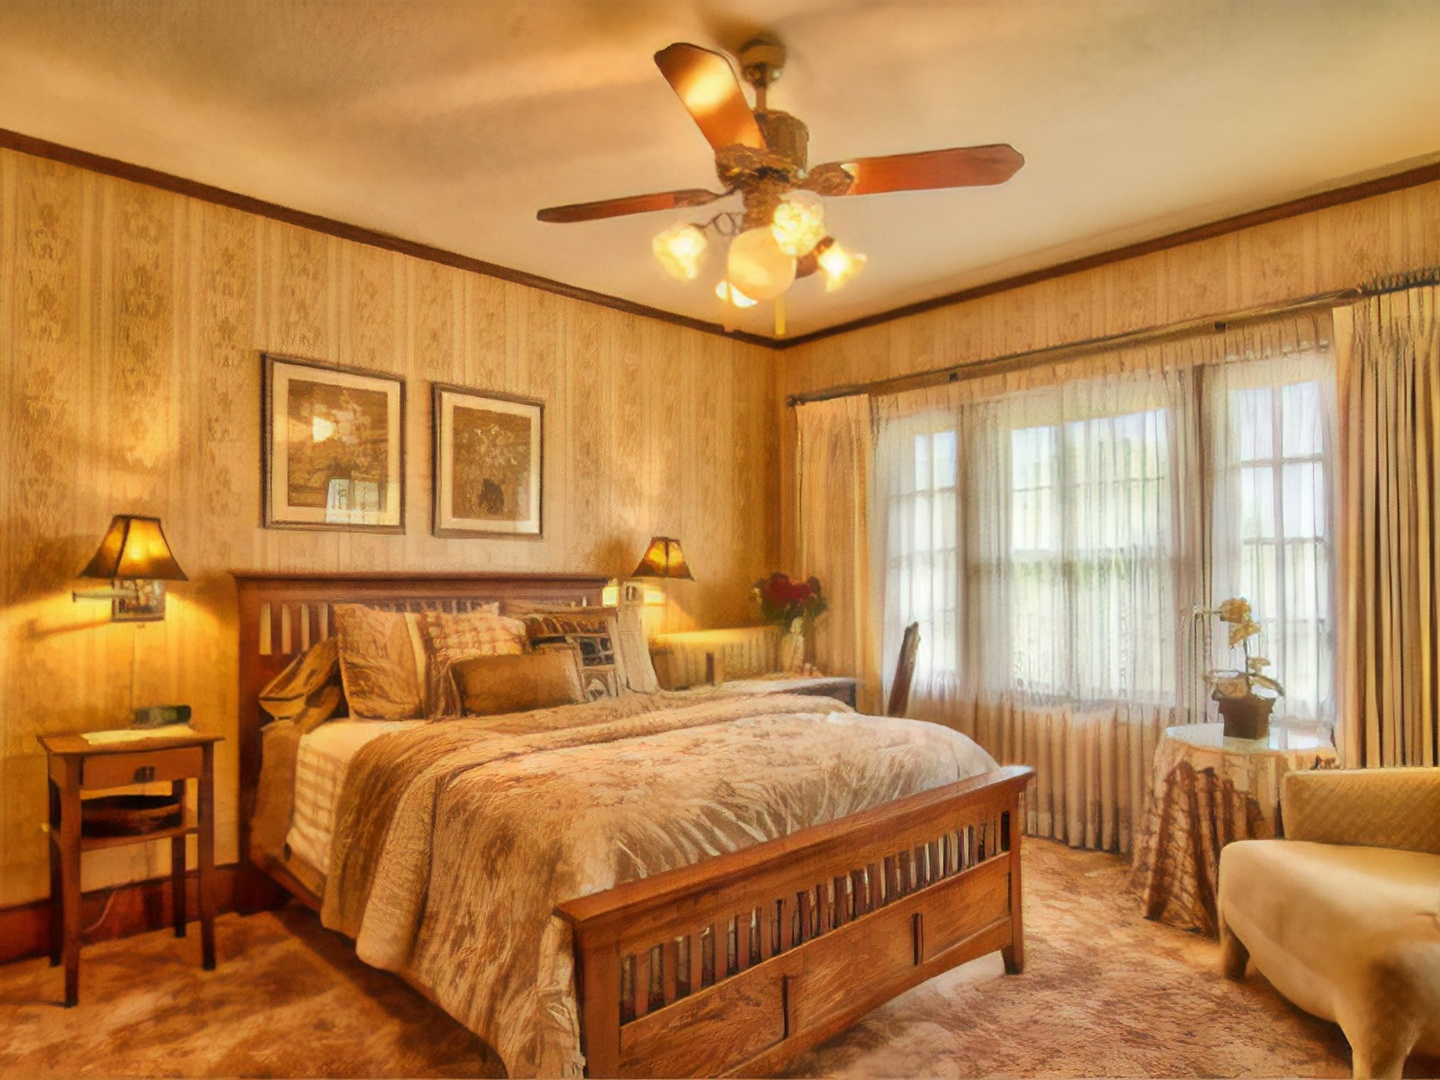 A bedroom with a large bed in a hotel room at Sweet Autumn Inn, LLC.